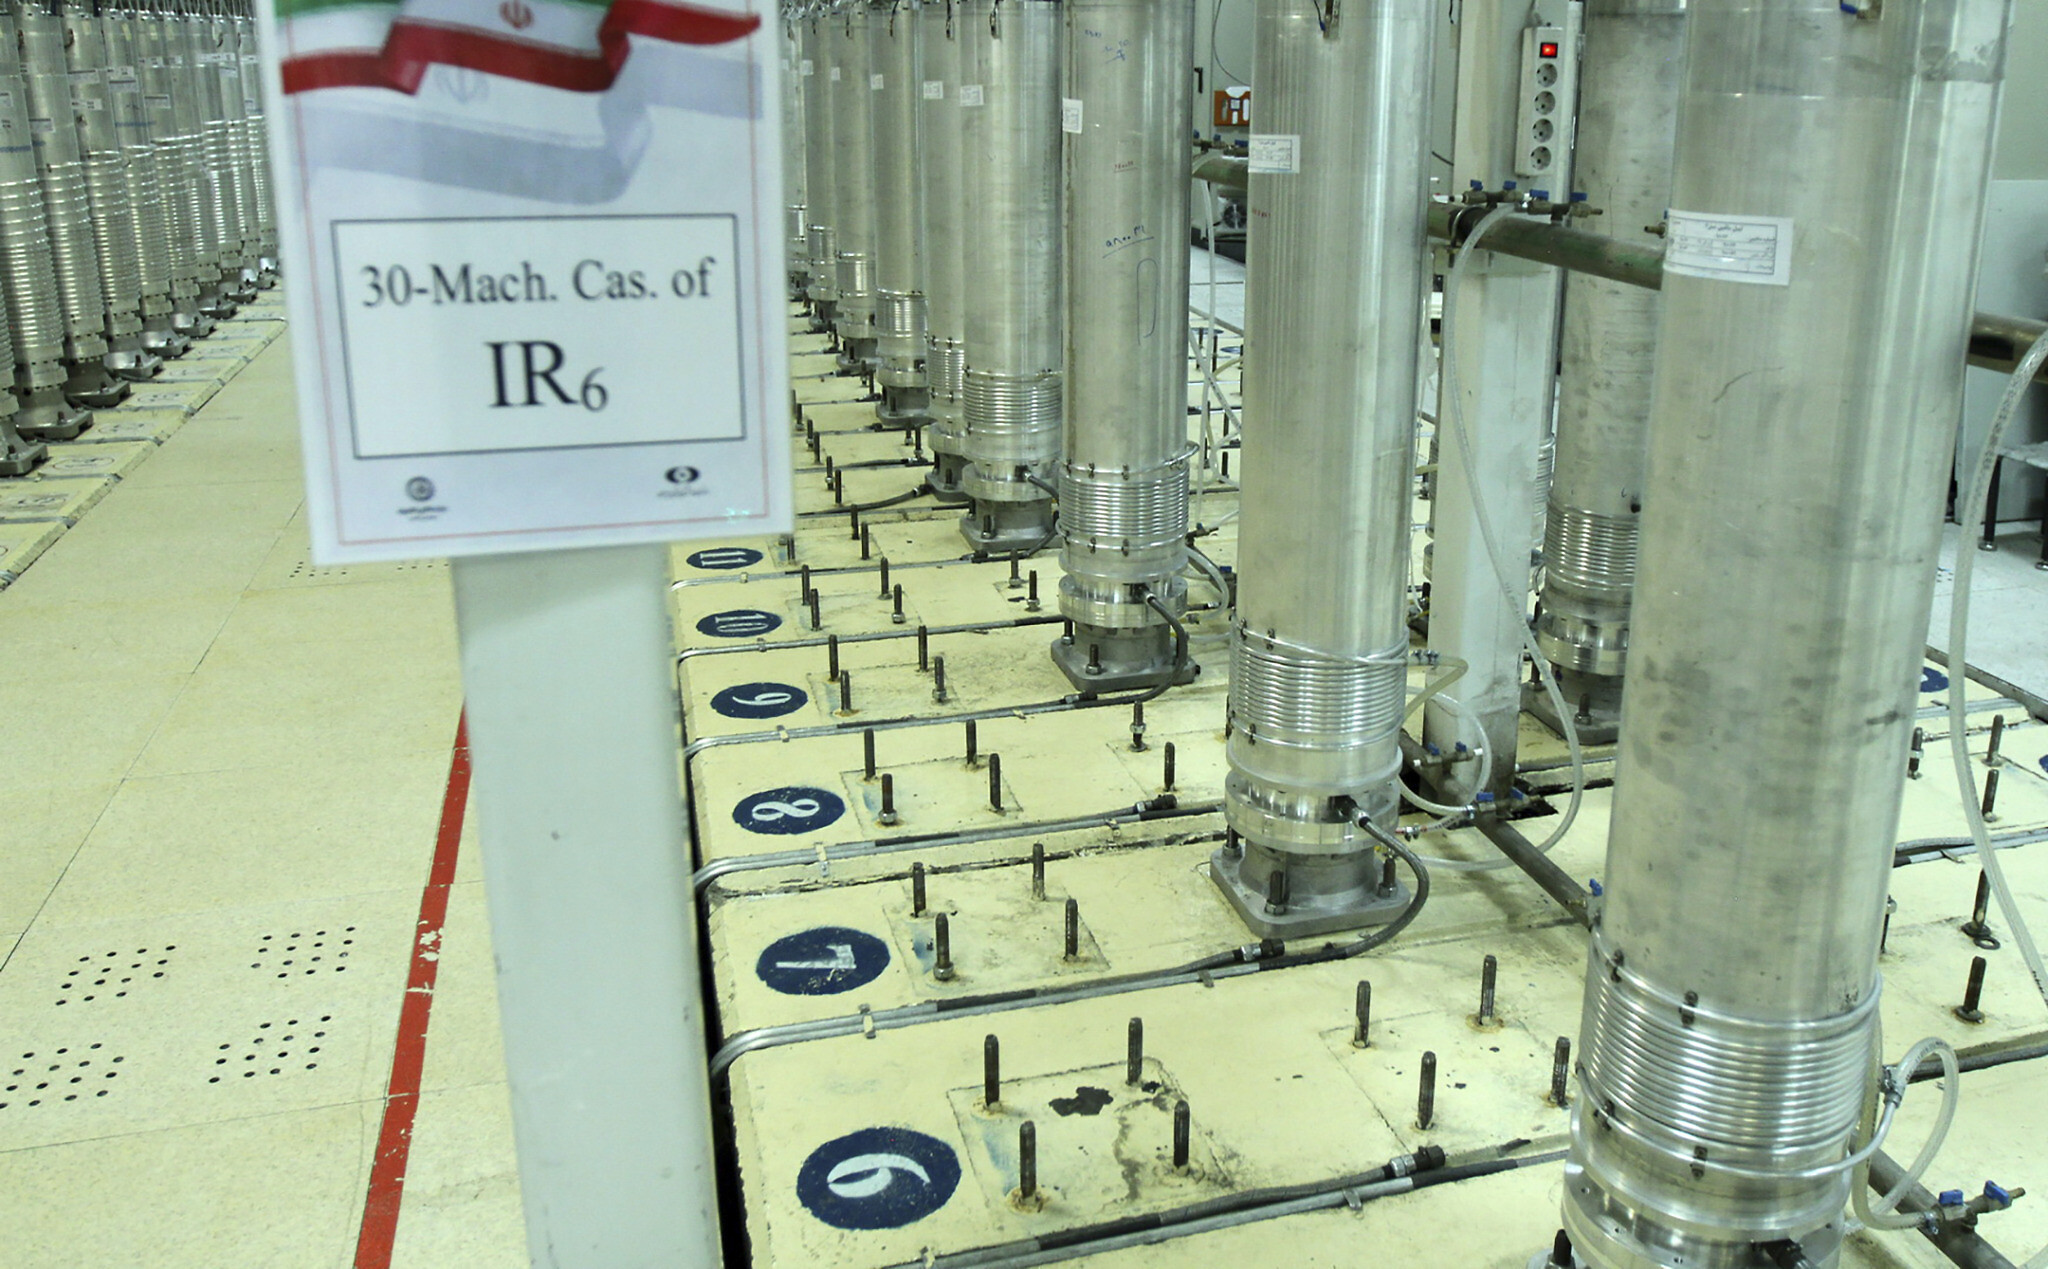 Iran says it is producing half a kilo of 20% enriched uranium every day